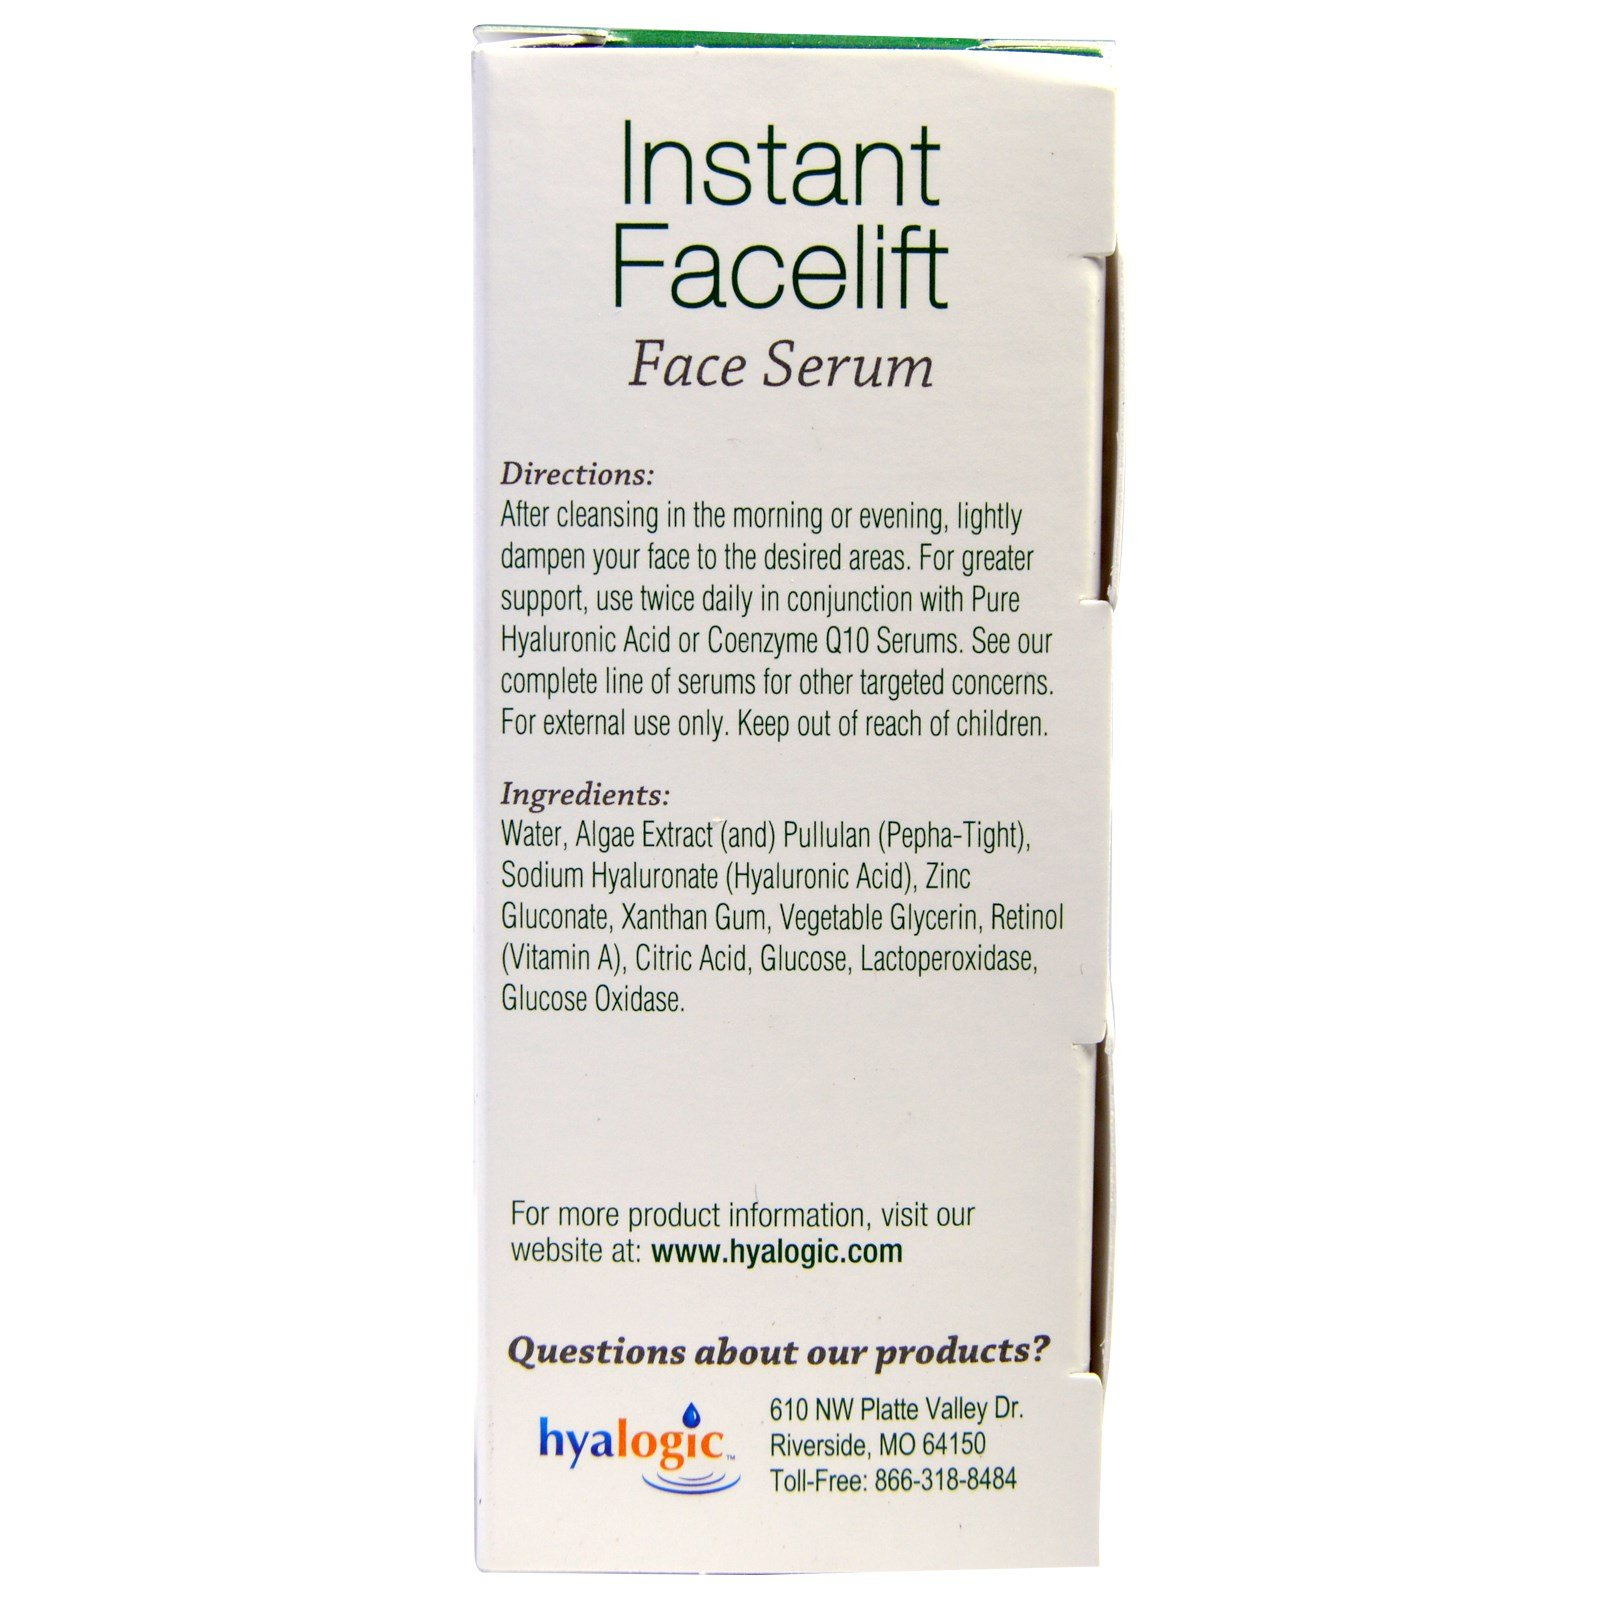 Hyalogic LLC, Instant Facelift Face Serum, .47 fl oz (pack of 4) Saysi NAT0000032 Natural Balancing Cream